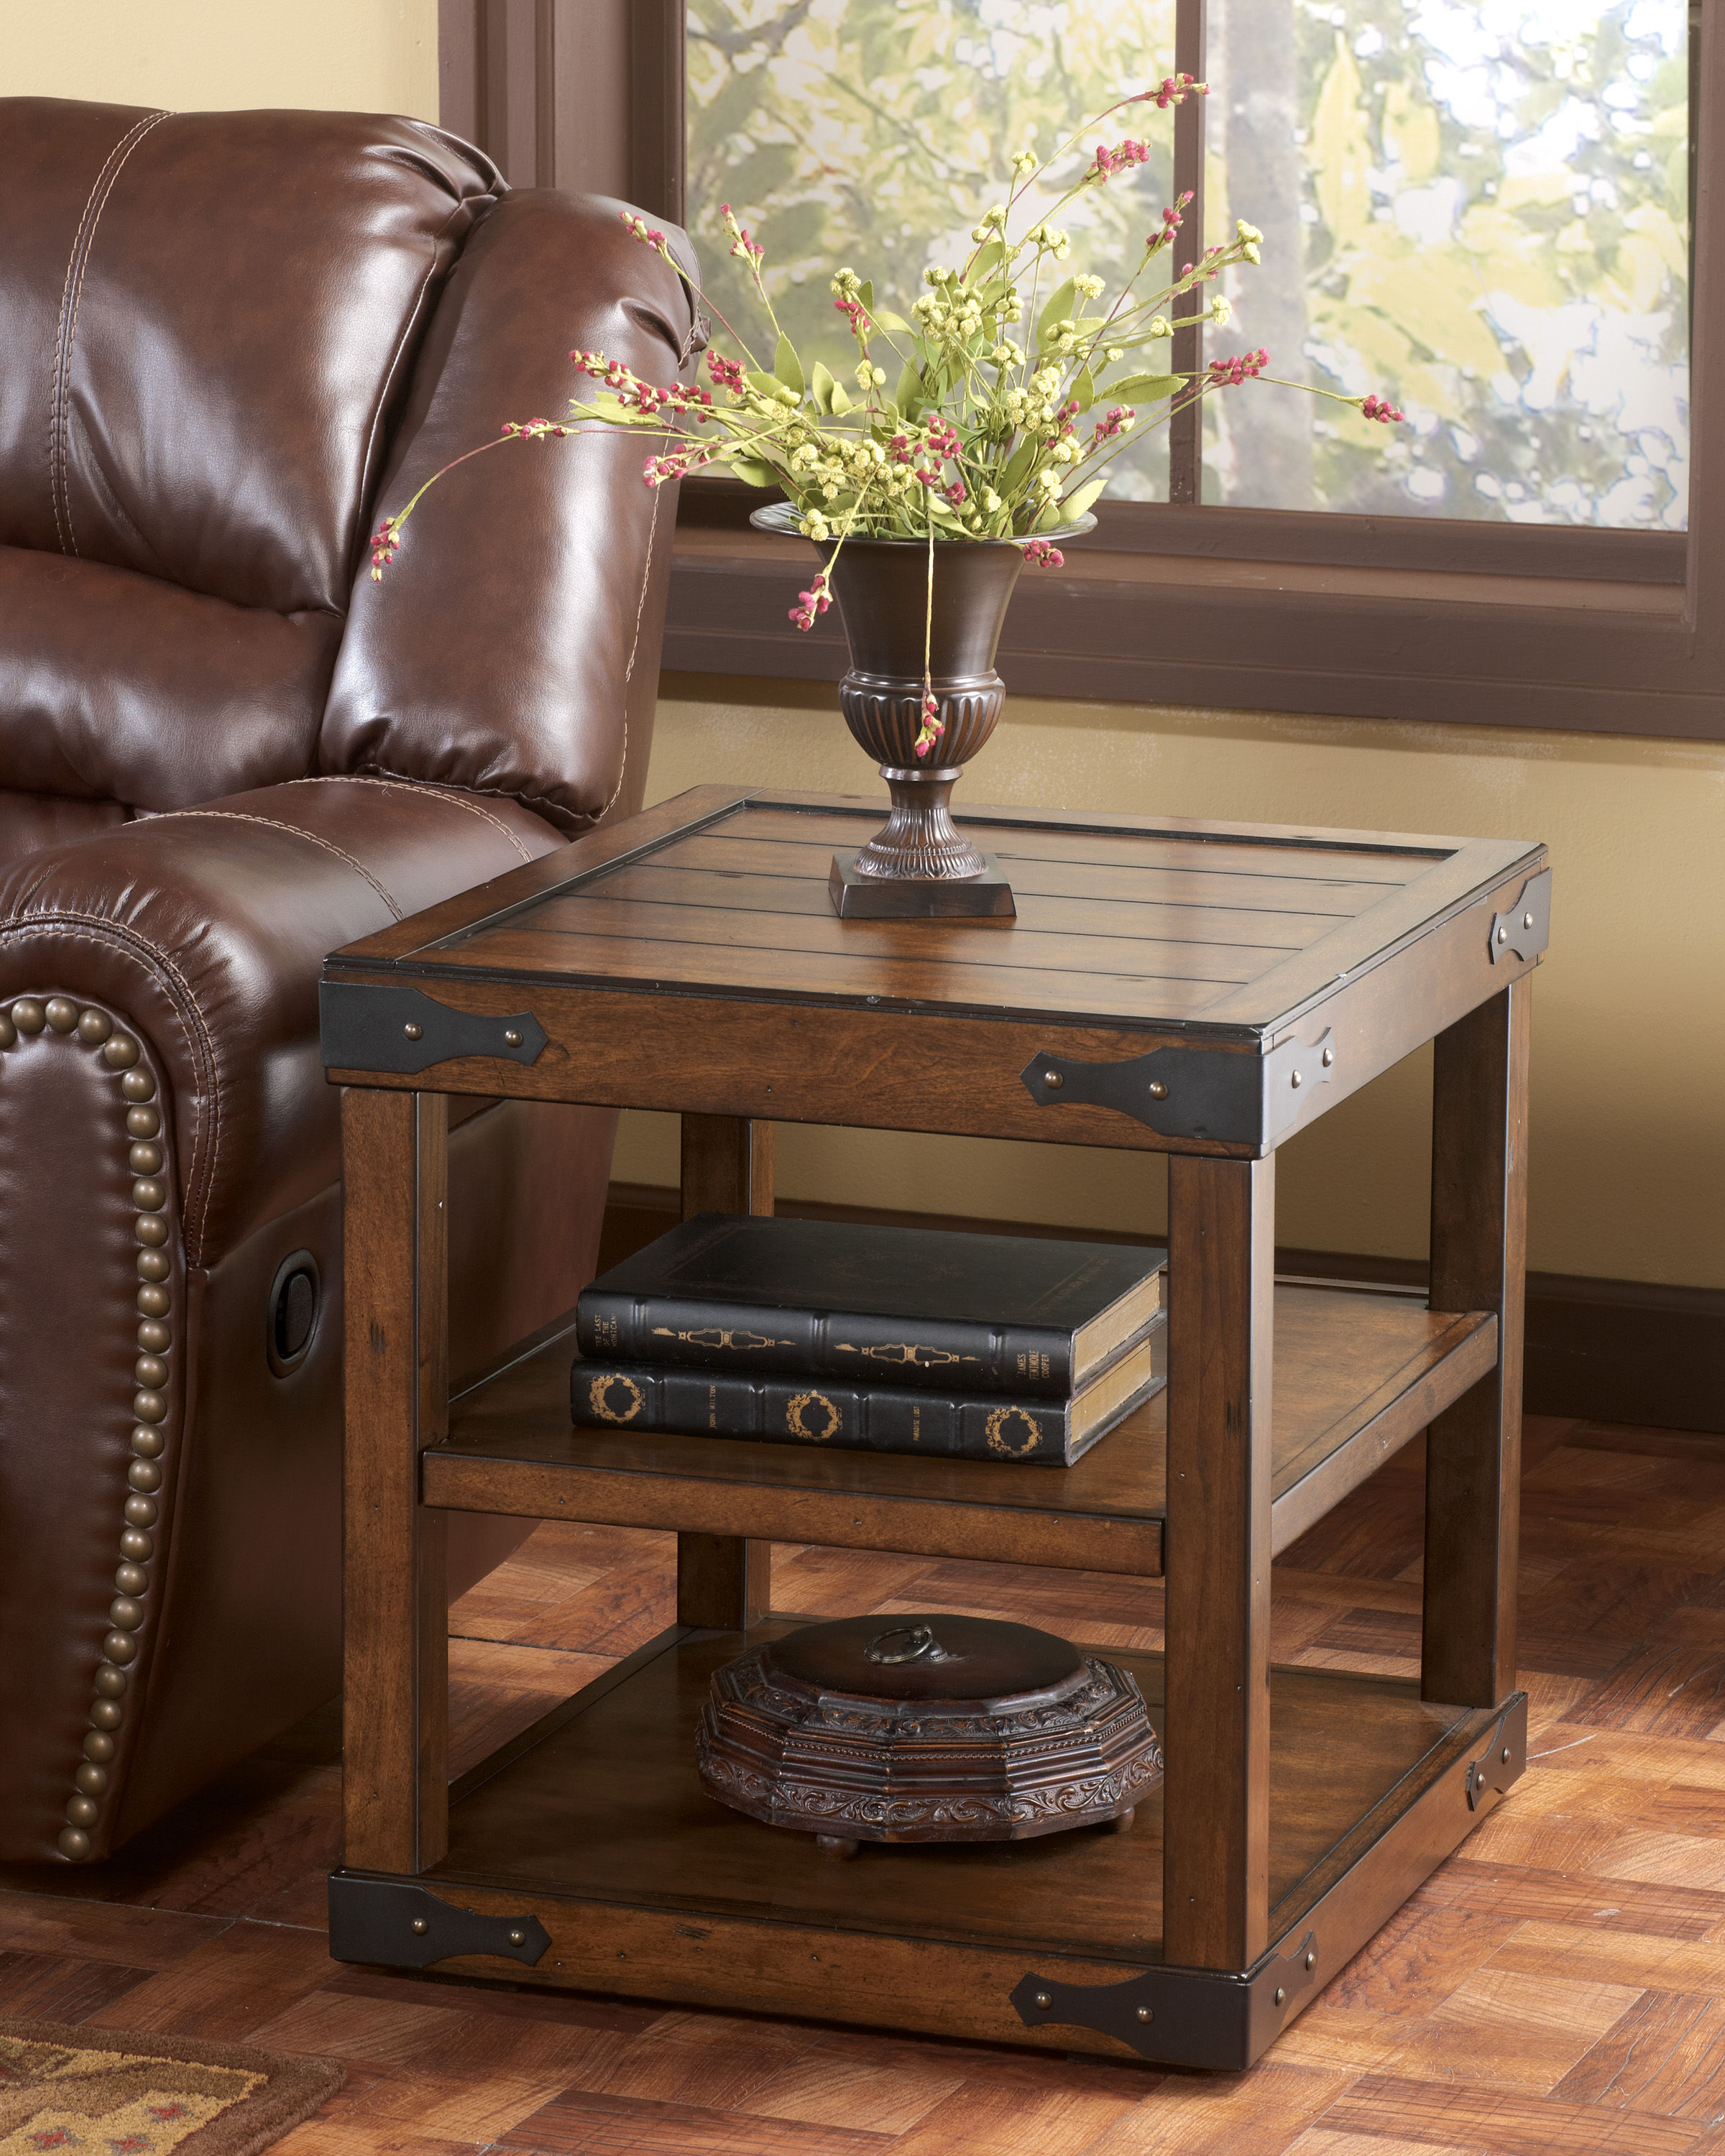 Shepherdsville traditional brown wood end table click to enlarge